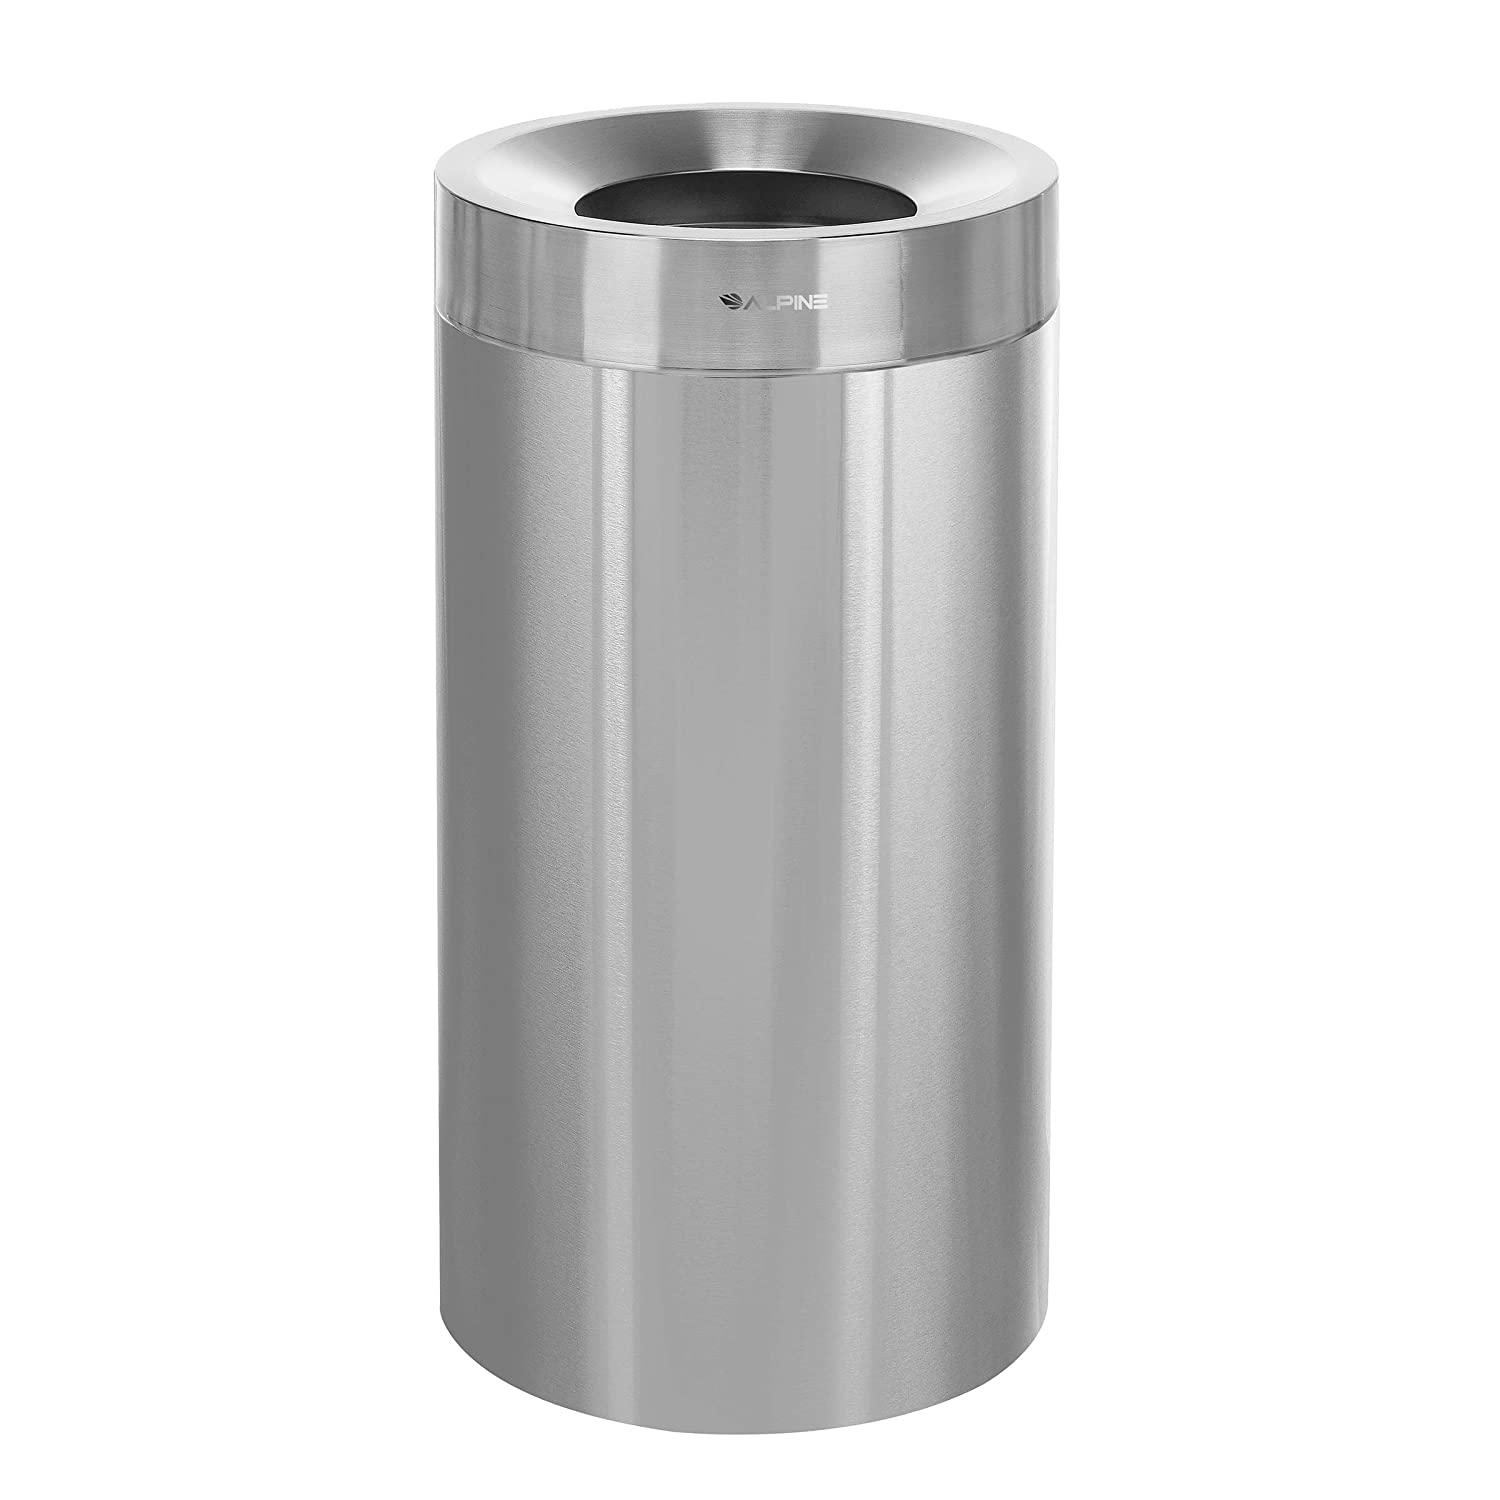 Alpine Industries 27 Gallon Heavy Duty Indoor Trash Can - Corrosion Proof Stainless Steel Garbage Bin - Heavy Duty Waste Disposal Trashcan for Litter Free Home, Schools, Hospitals and Businesses (27 gallon)